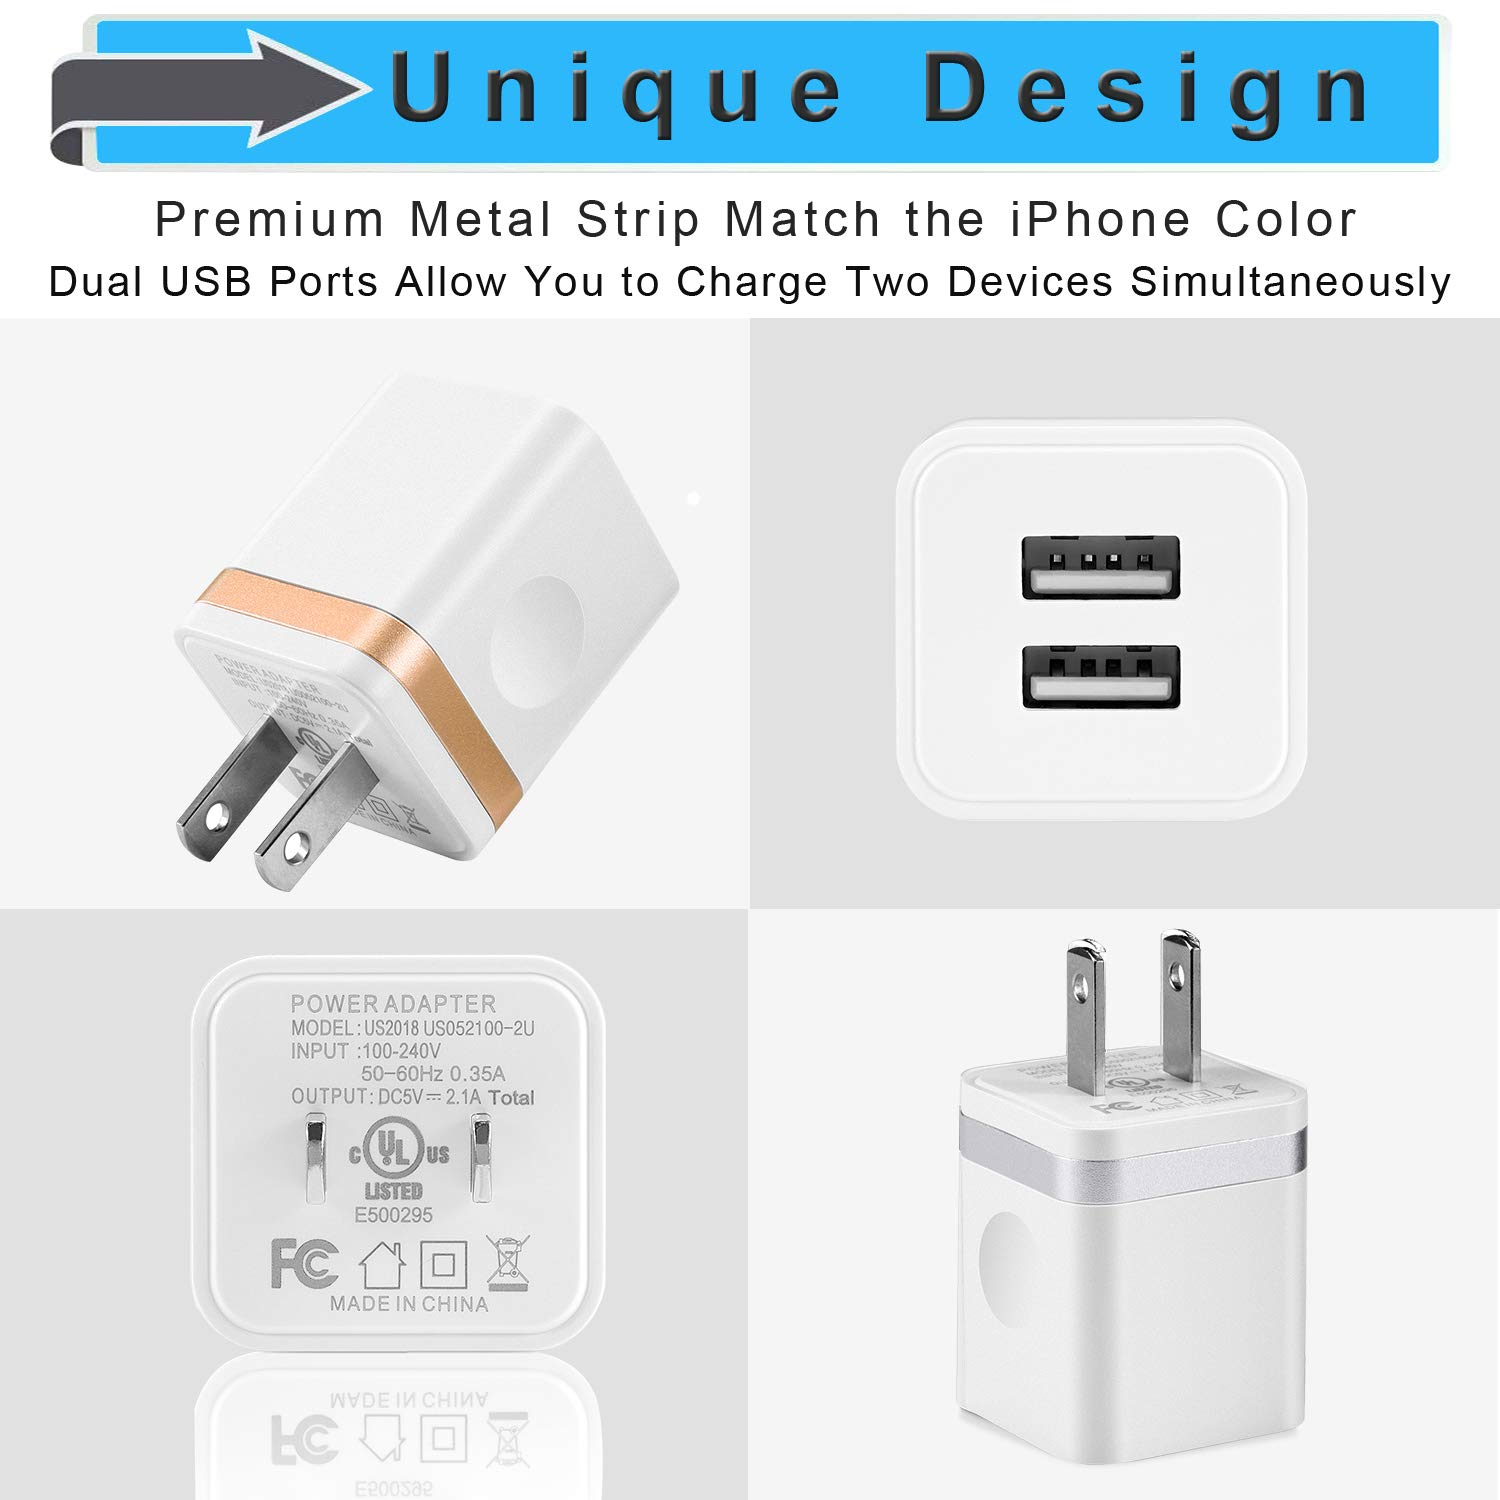 LEEKOTECH USB Wall Charger, [UL Certified] 3-Pack 2.1A USB Plug Dual Port Power Adapter Charging Block Cube for iPhone X 8 7 6 Plus 4 5S, iPad, Samsung Galaxy S5 S6 S7 Edge, Android Cell Phone by LEEKOTECH (Image #4)